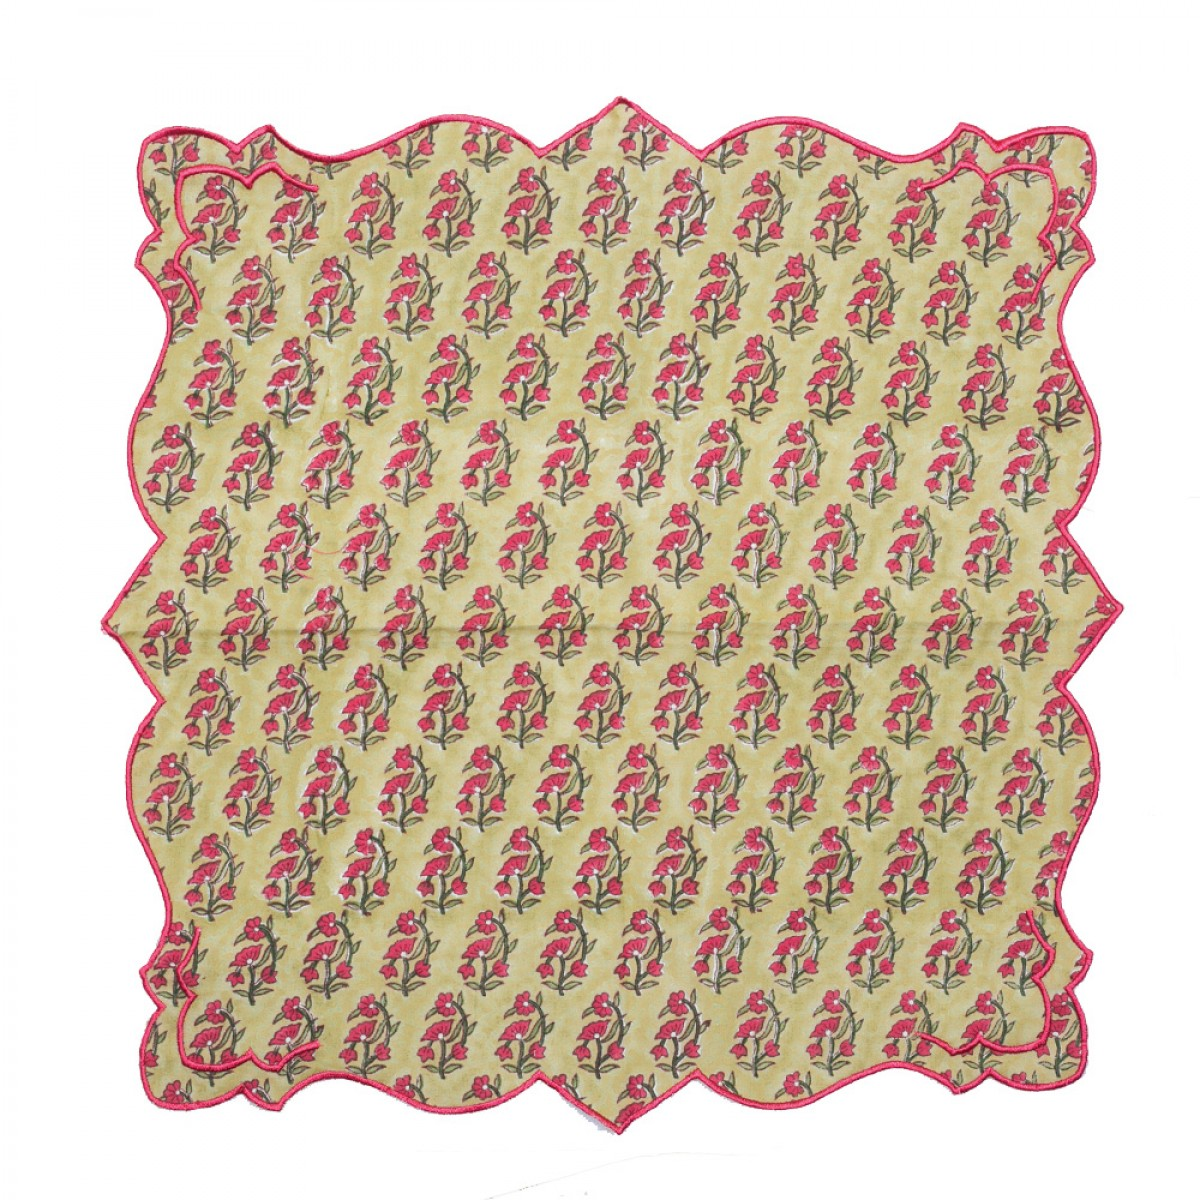 Cotton Scallop Embroidered Printed Napkin - Olive Green (Set of 6)